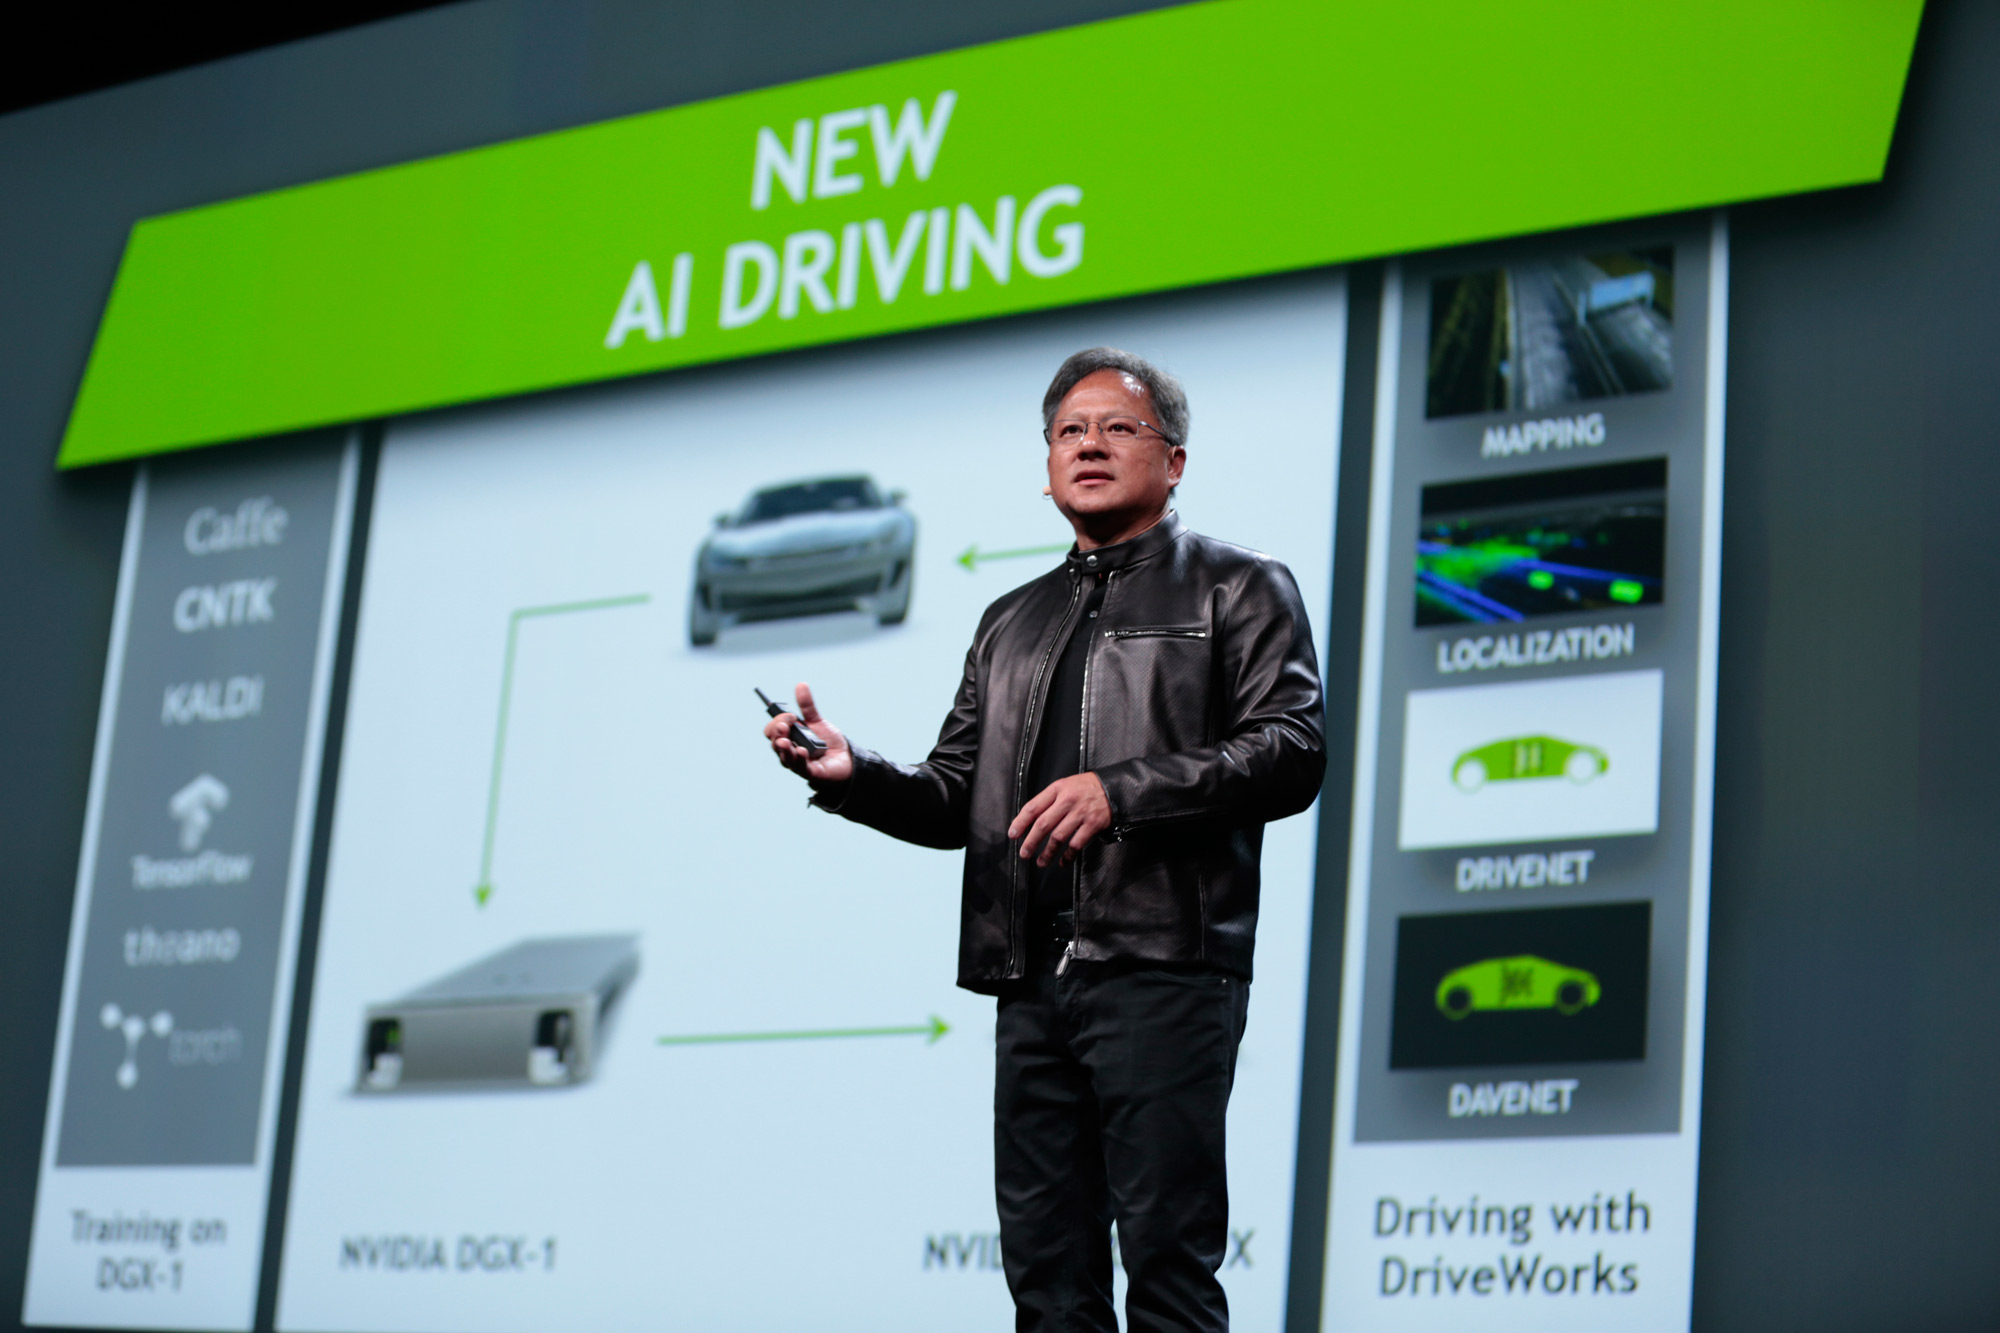 nvidia drive px 2 for autocruise revealed